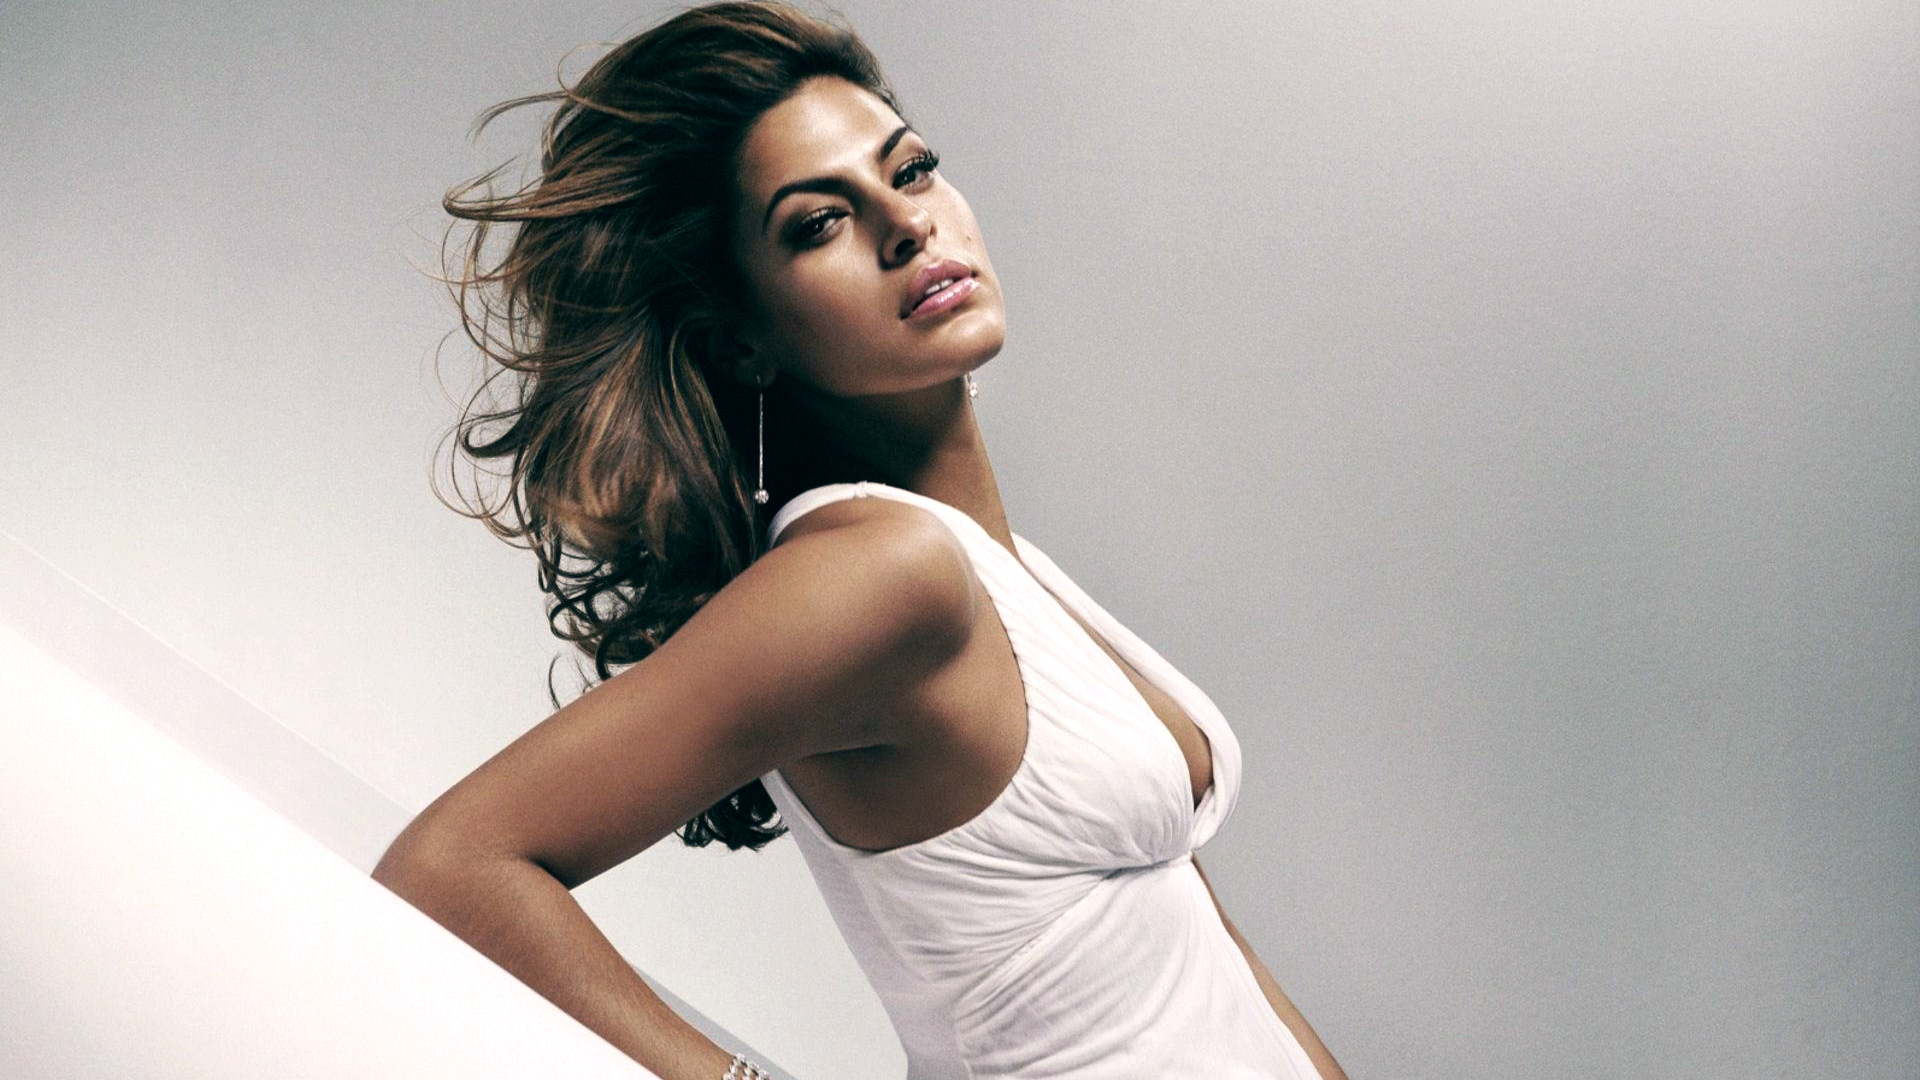 Eva Mendes 2012 wallpaper